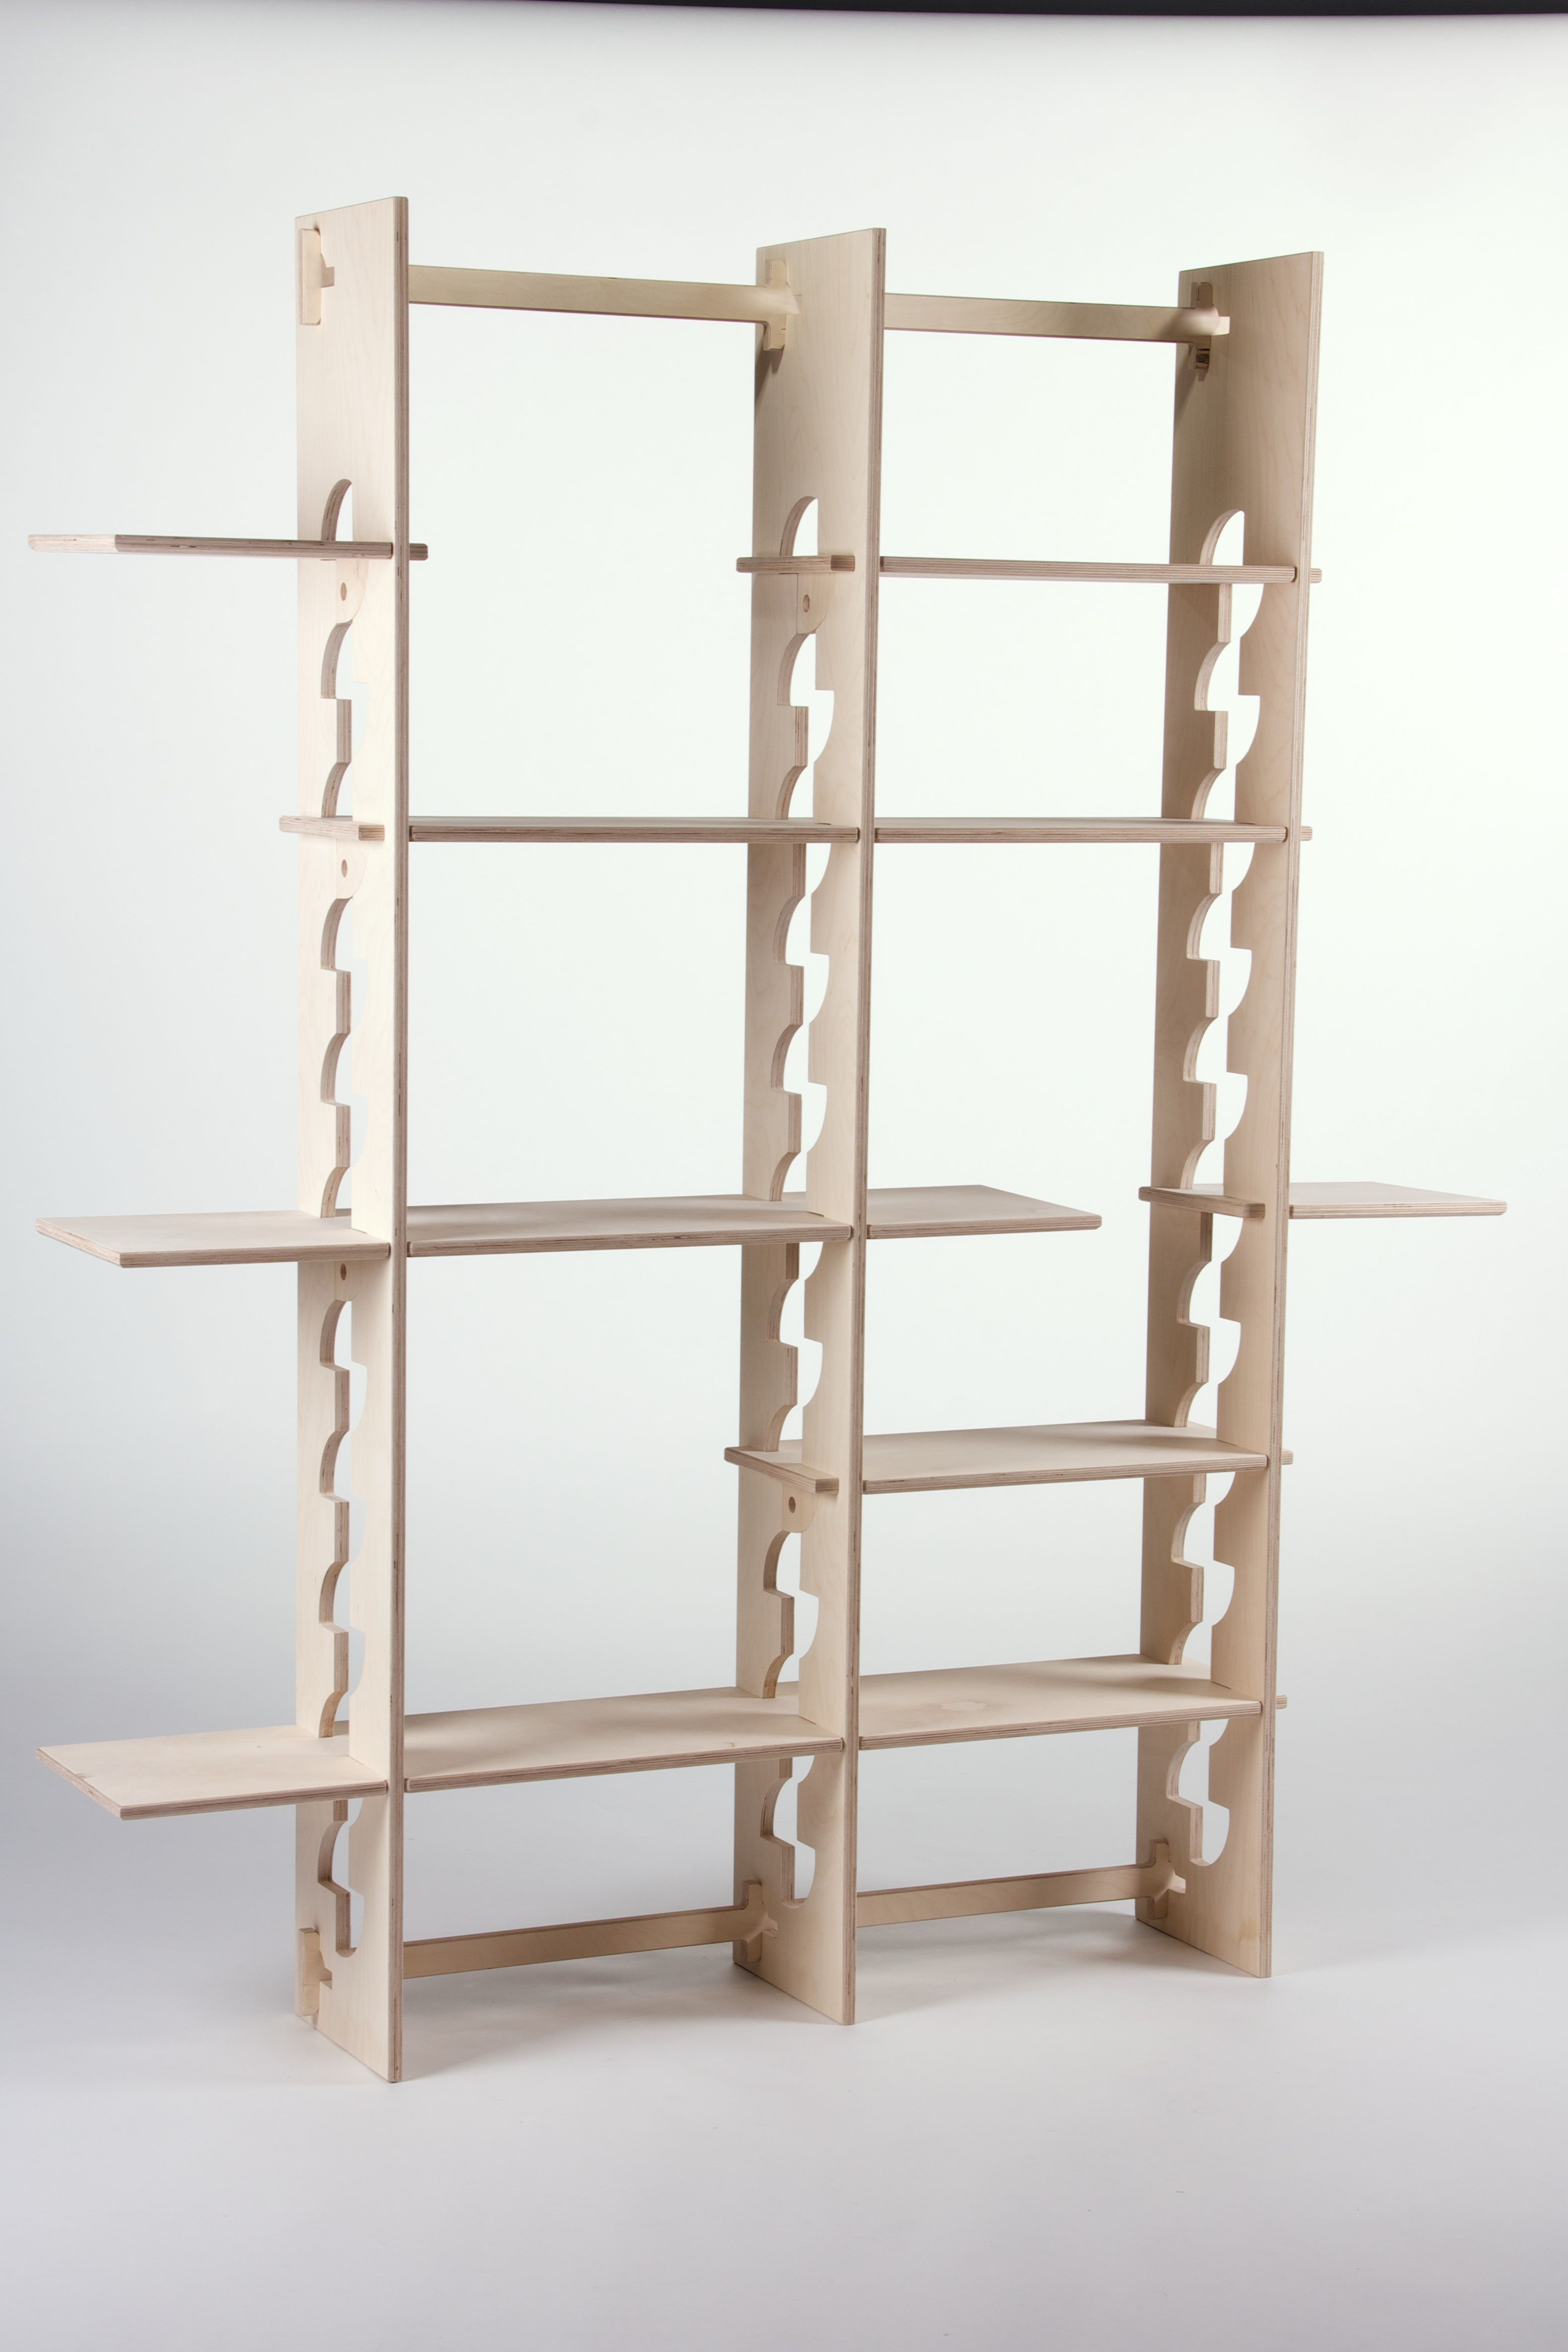 #Shelf Life designed and made by #Brian #Walsh